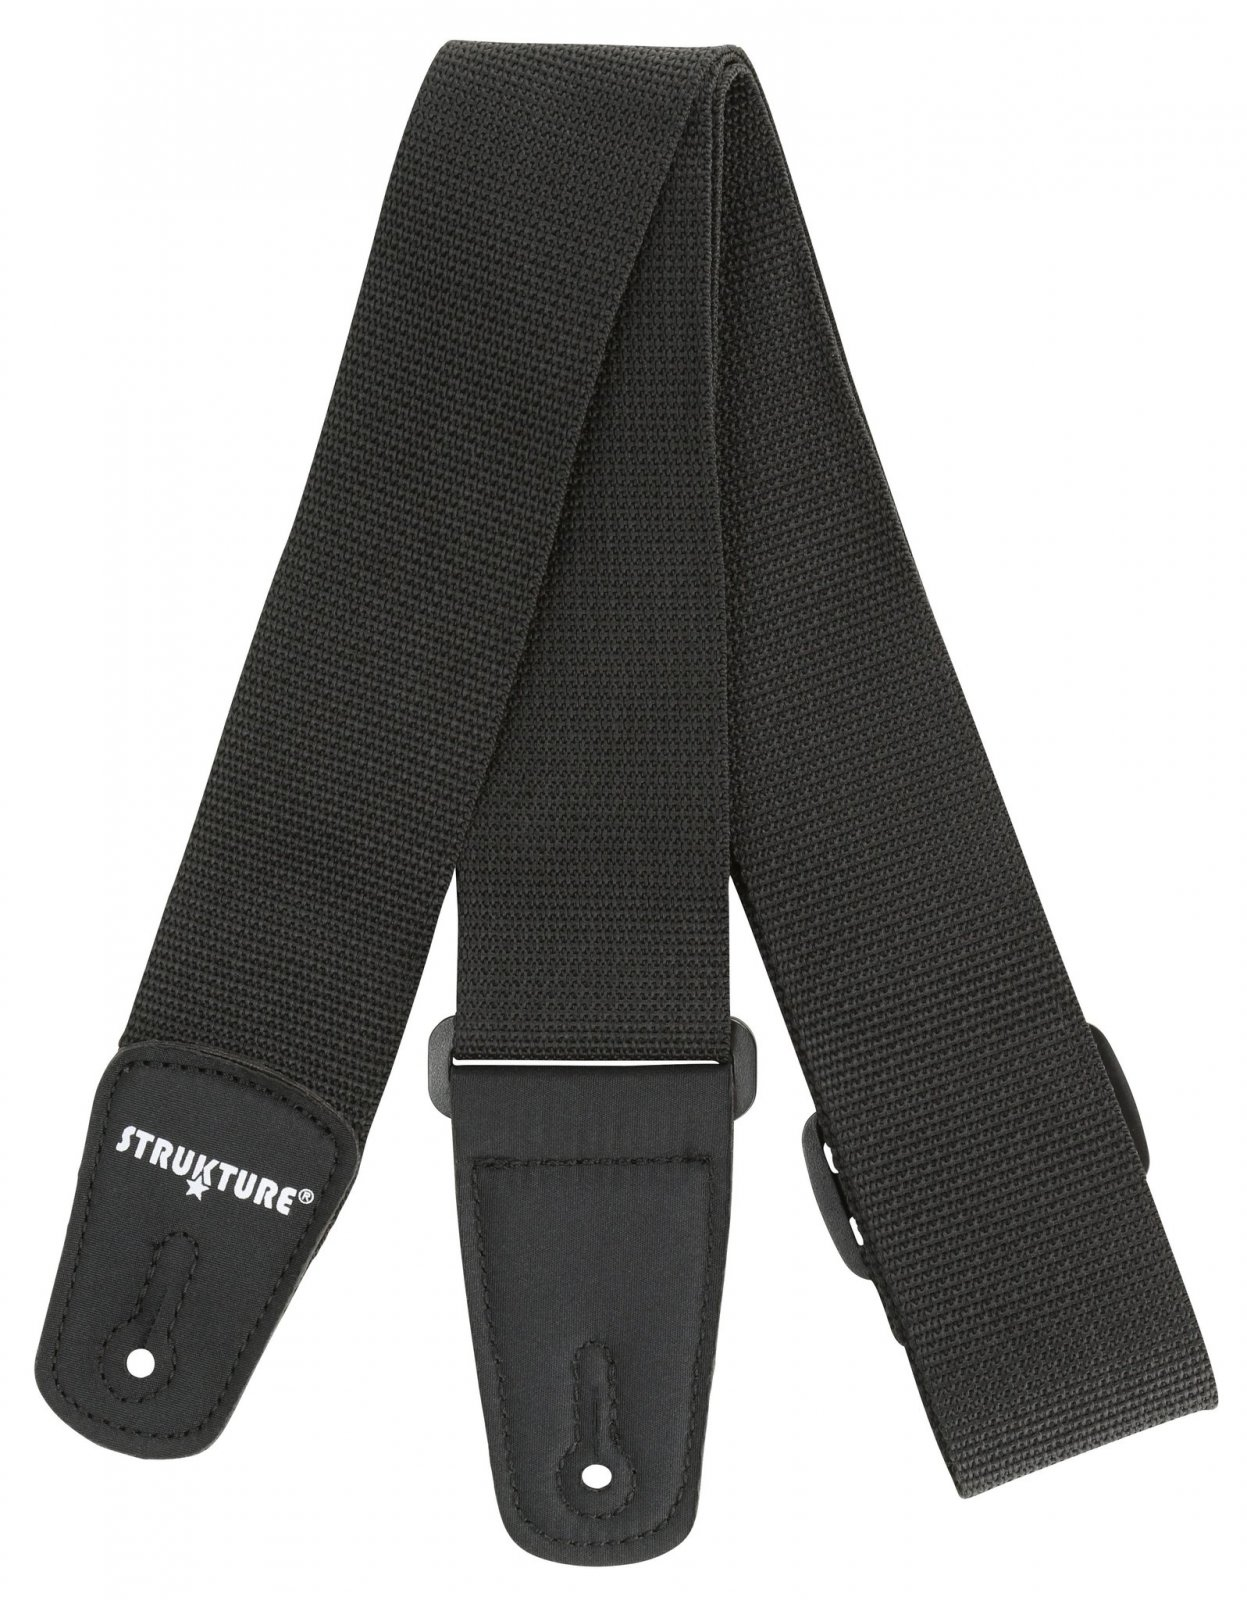 STRUKTURE 2 POLY GUITAR STRAP WITH NYLON TABS